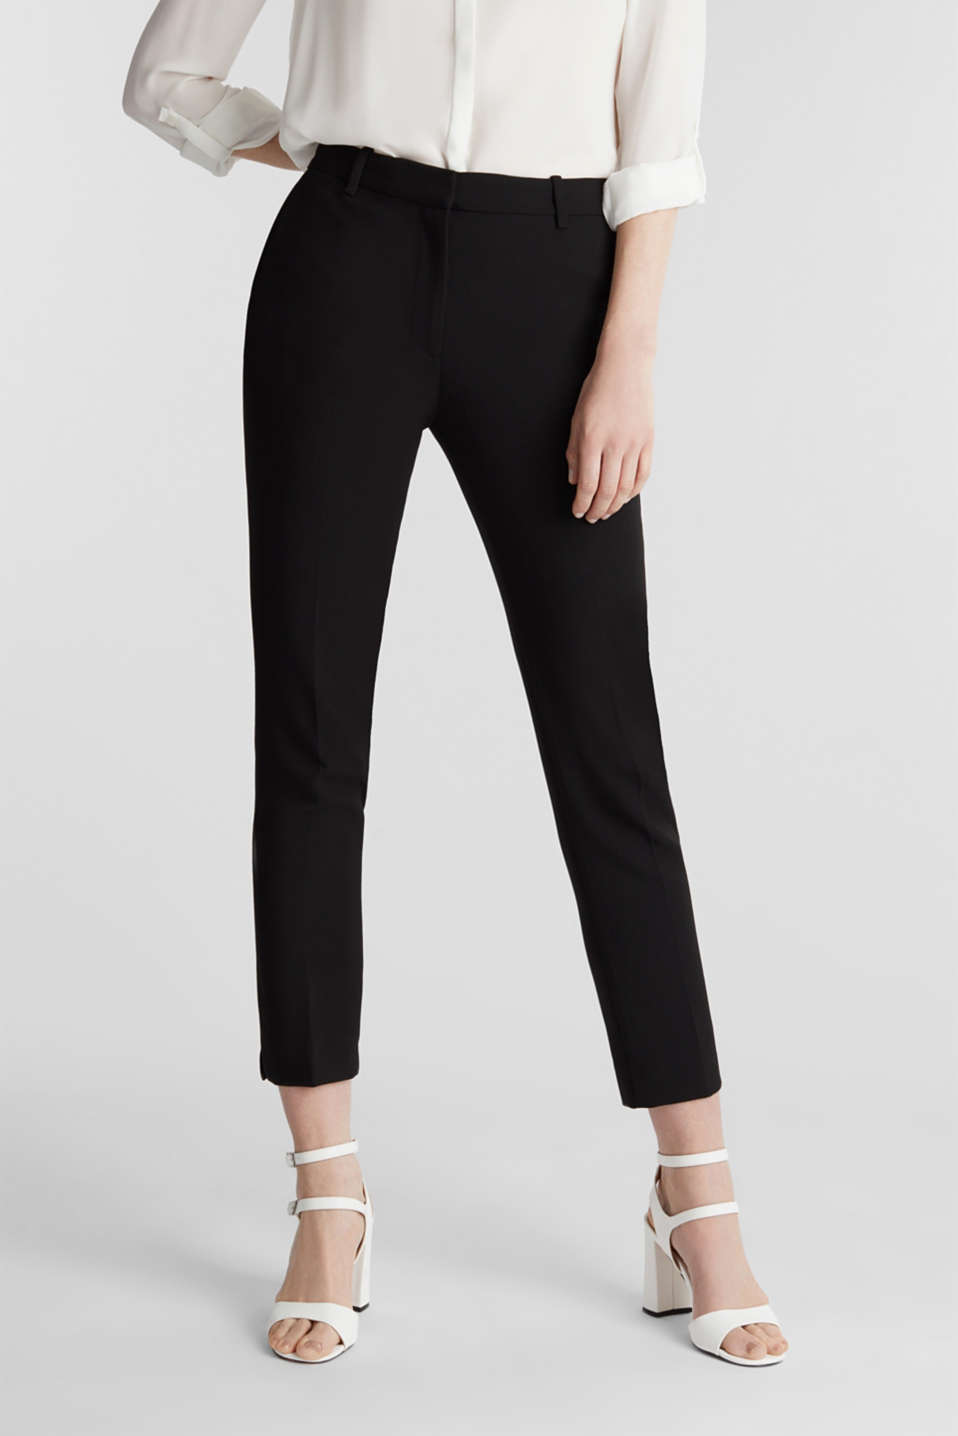 Stretch trousers in a business look